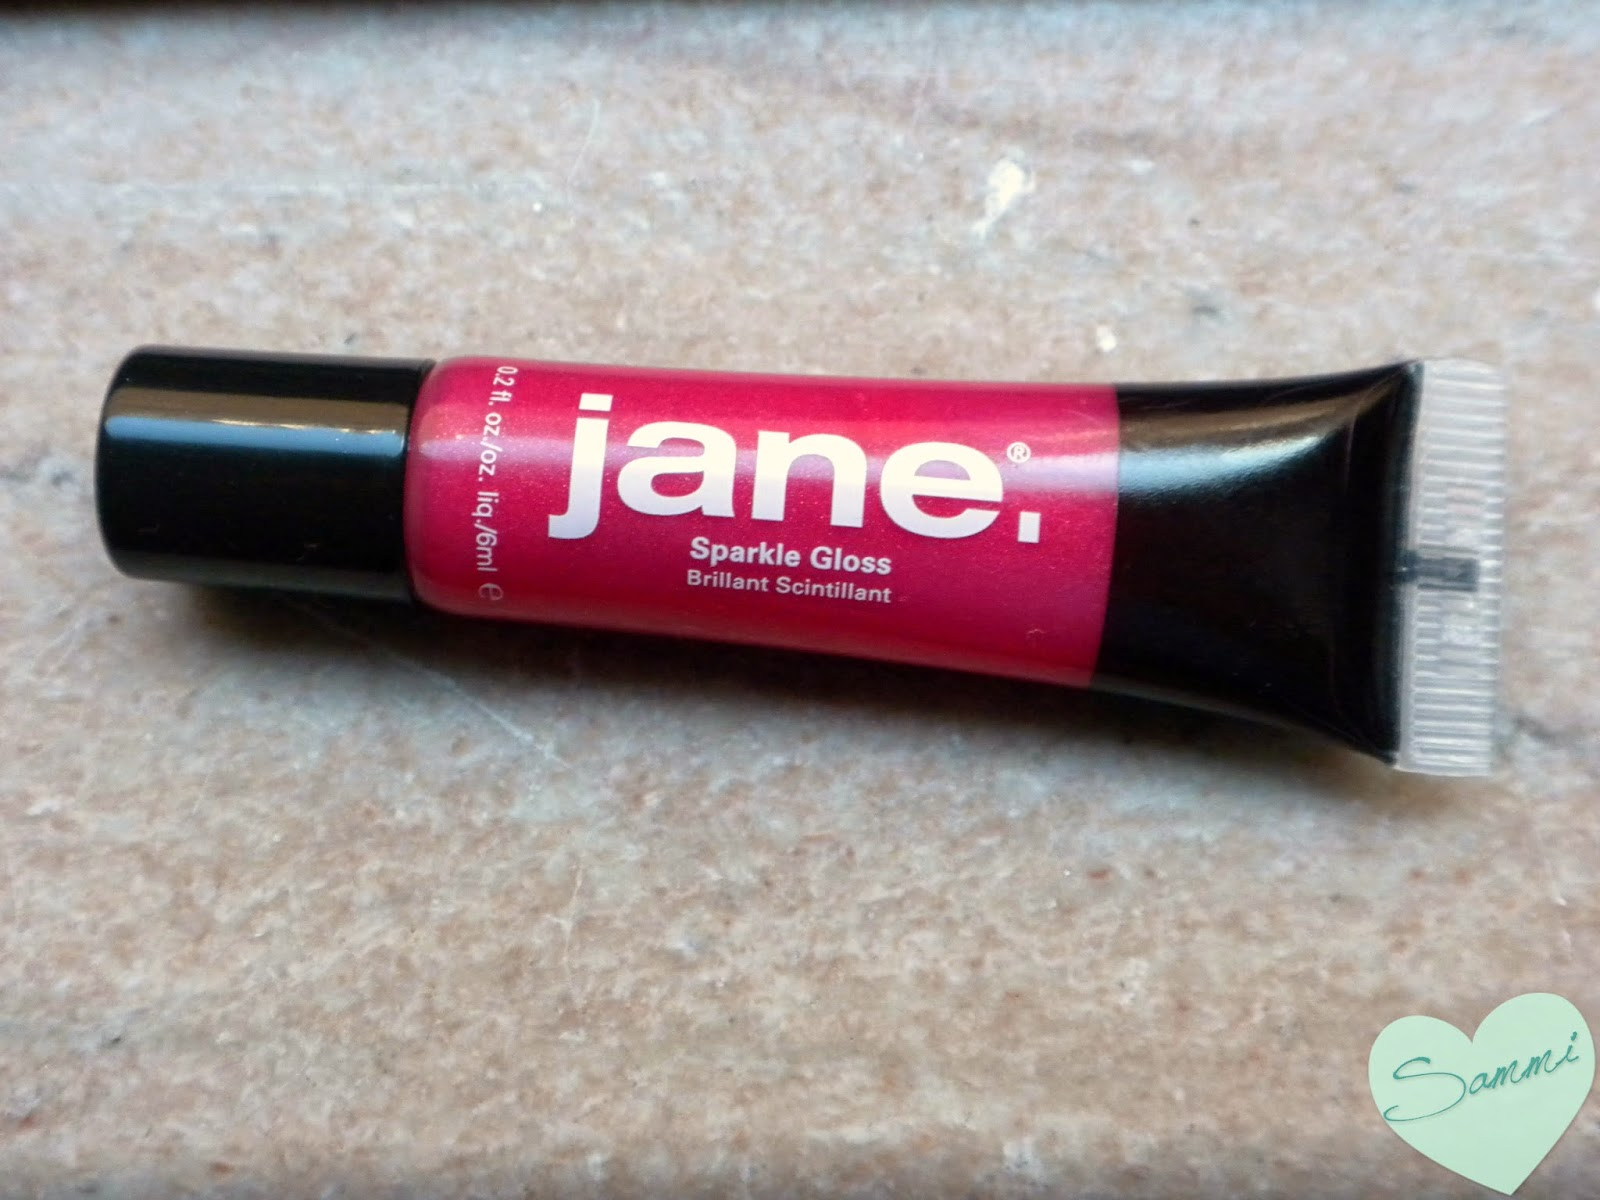 JANE COSMETICS Sparkle Gloss in Sparkle Pink